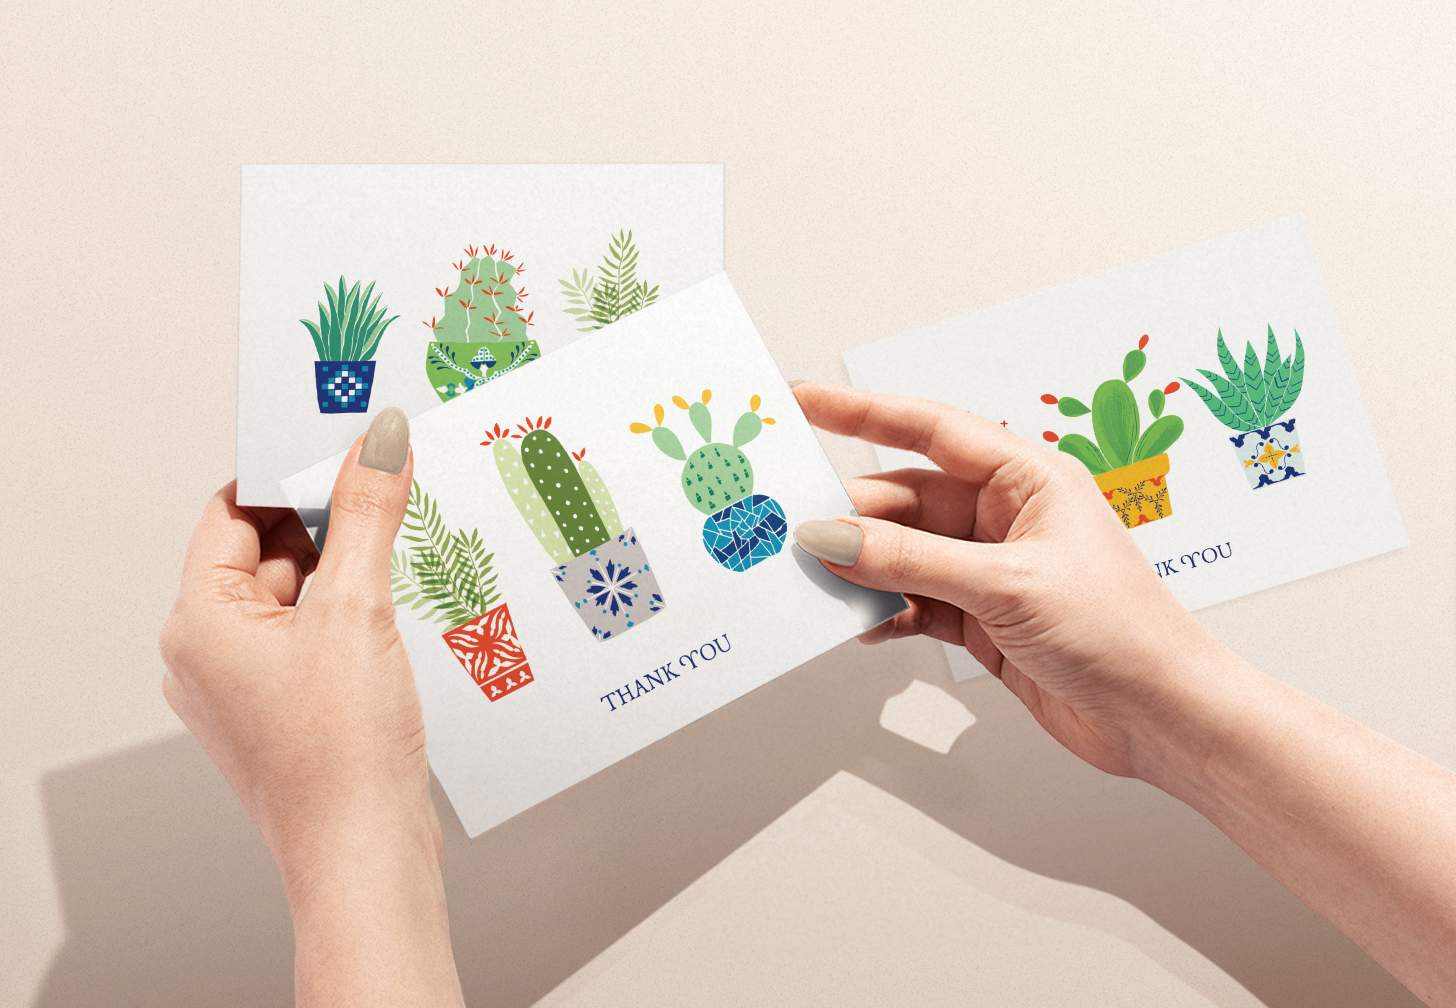 Hands holding colorful succulents design card with various cactus cards in background